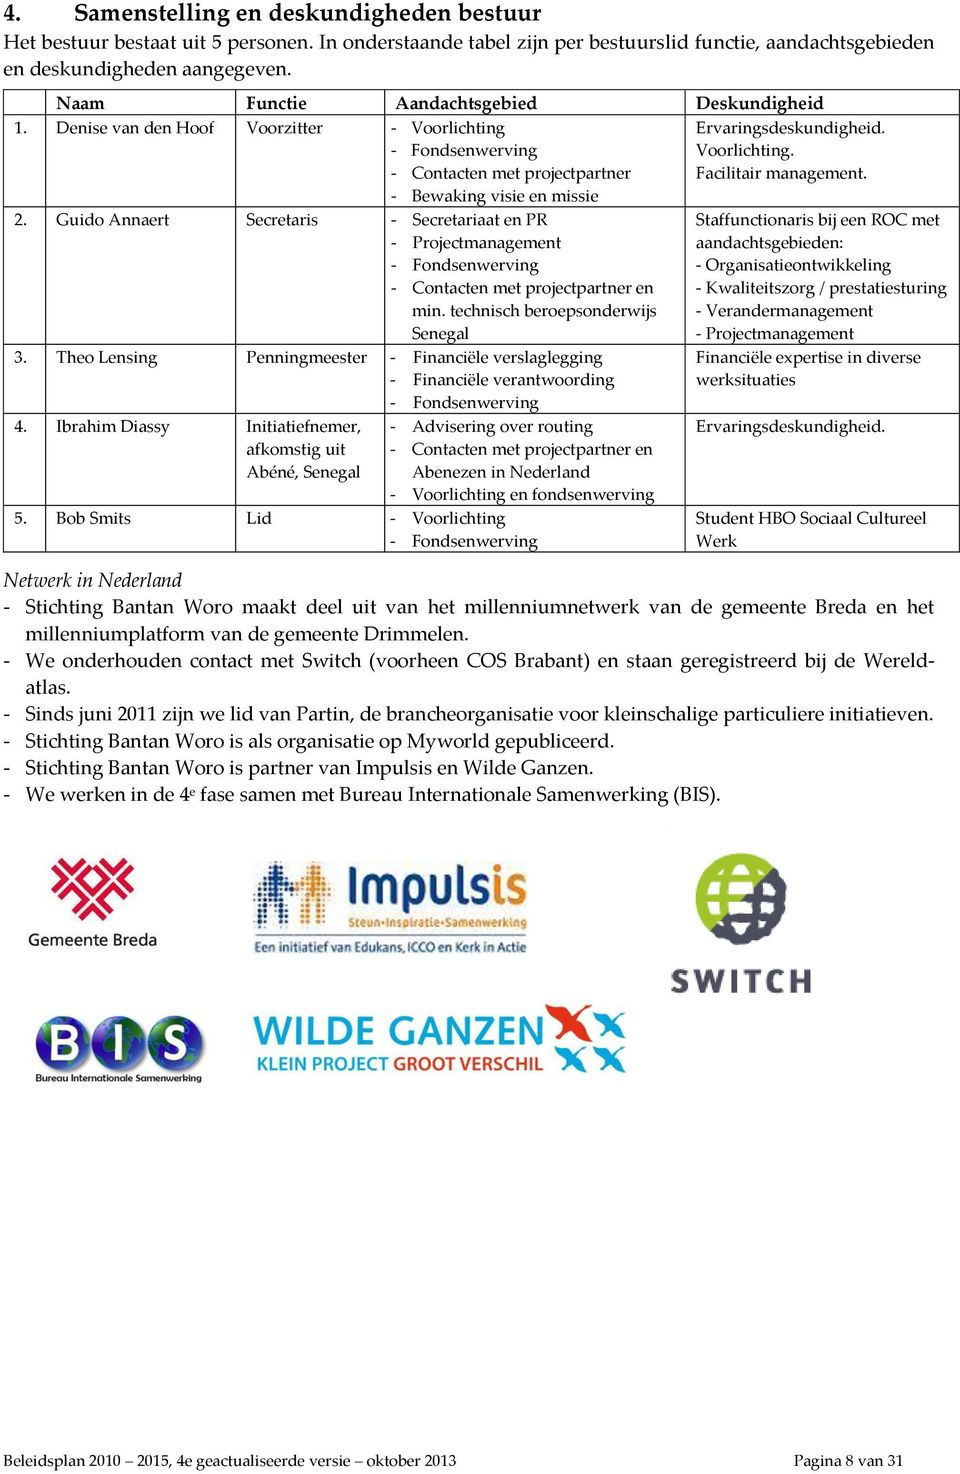 Guido Annaert Secretaris - Secretariaat en PR - Projectmanagement - Fondsenwerving - Contacten met projectpartner en min. technisch beroepsonderwijs Senegal 3.